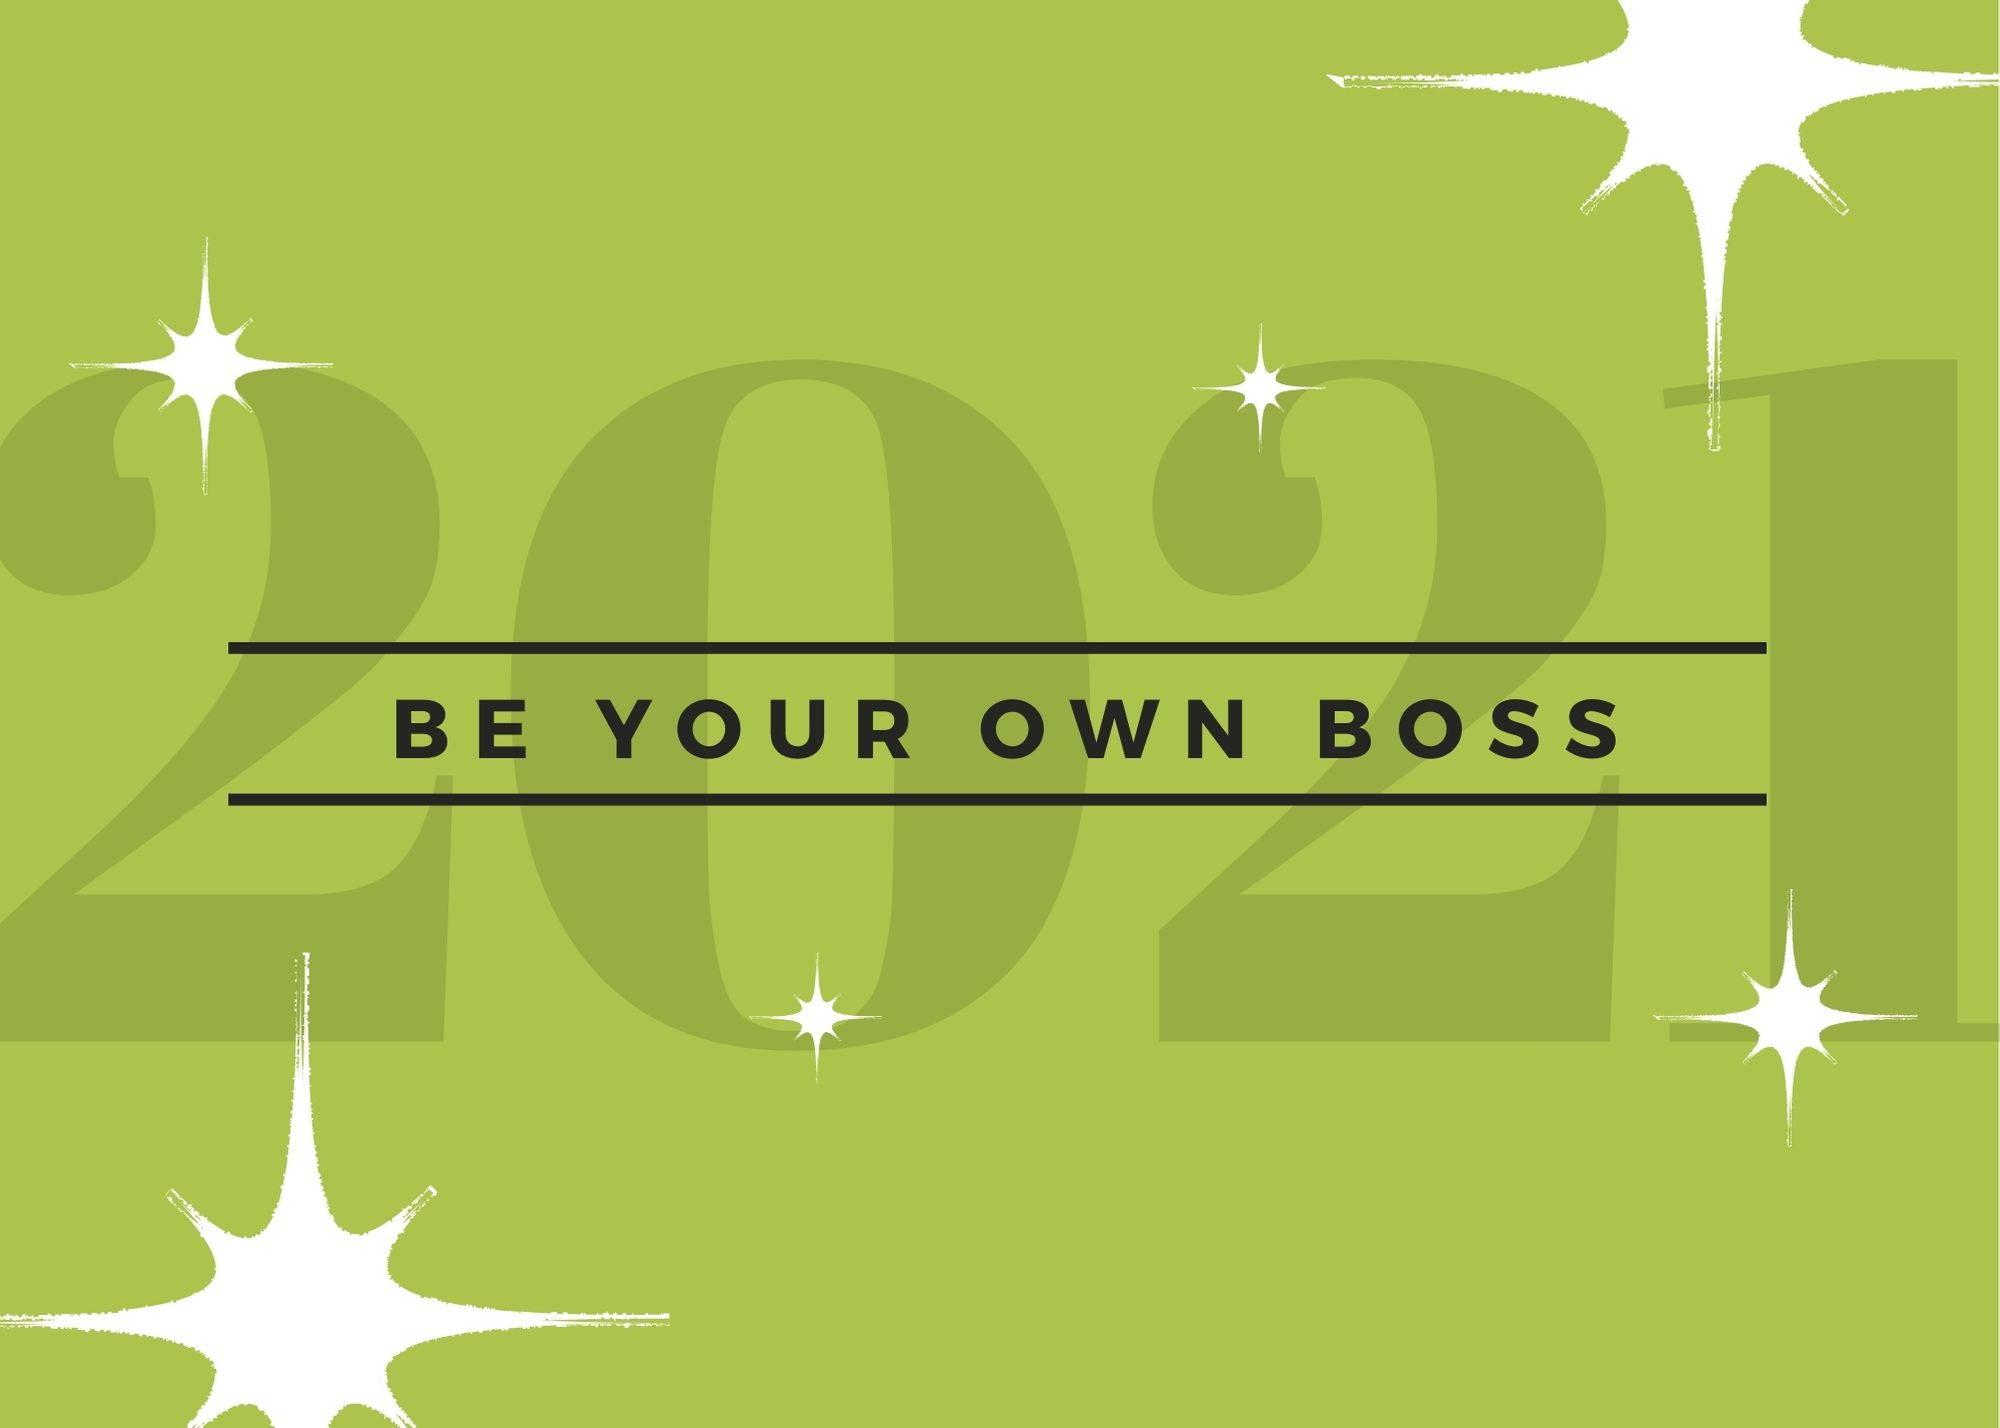 To being your own boss